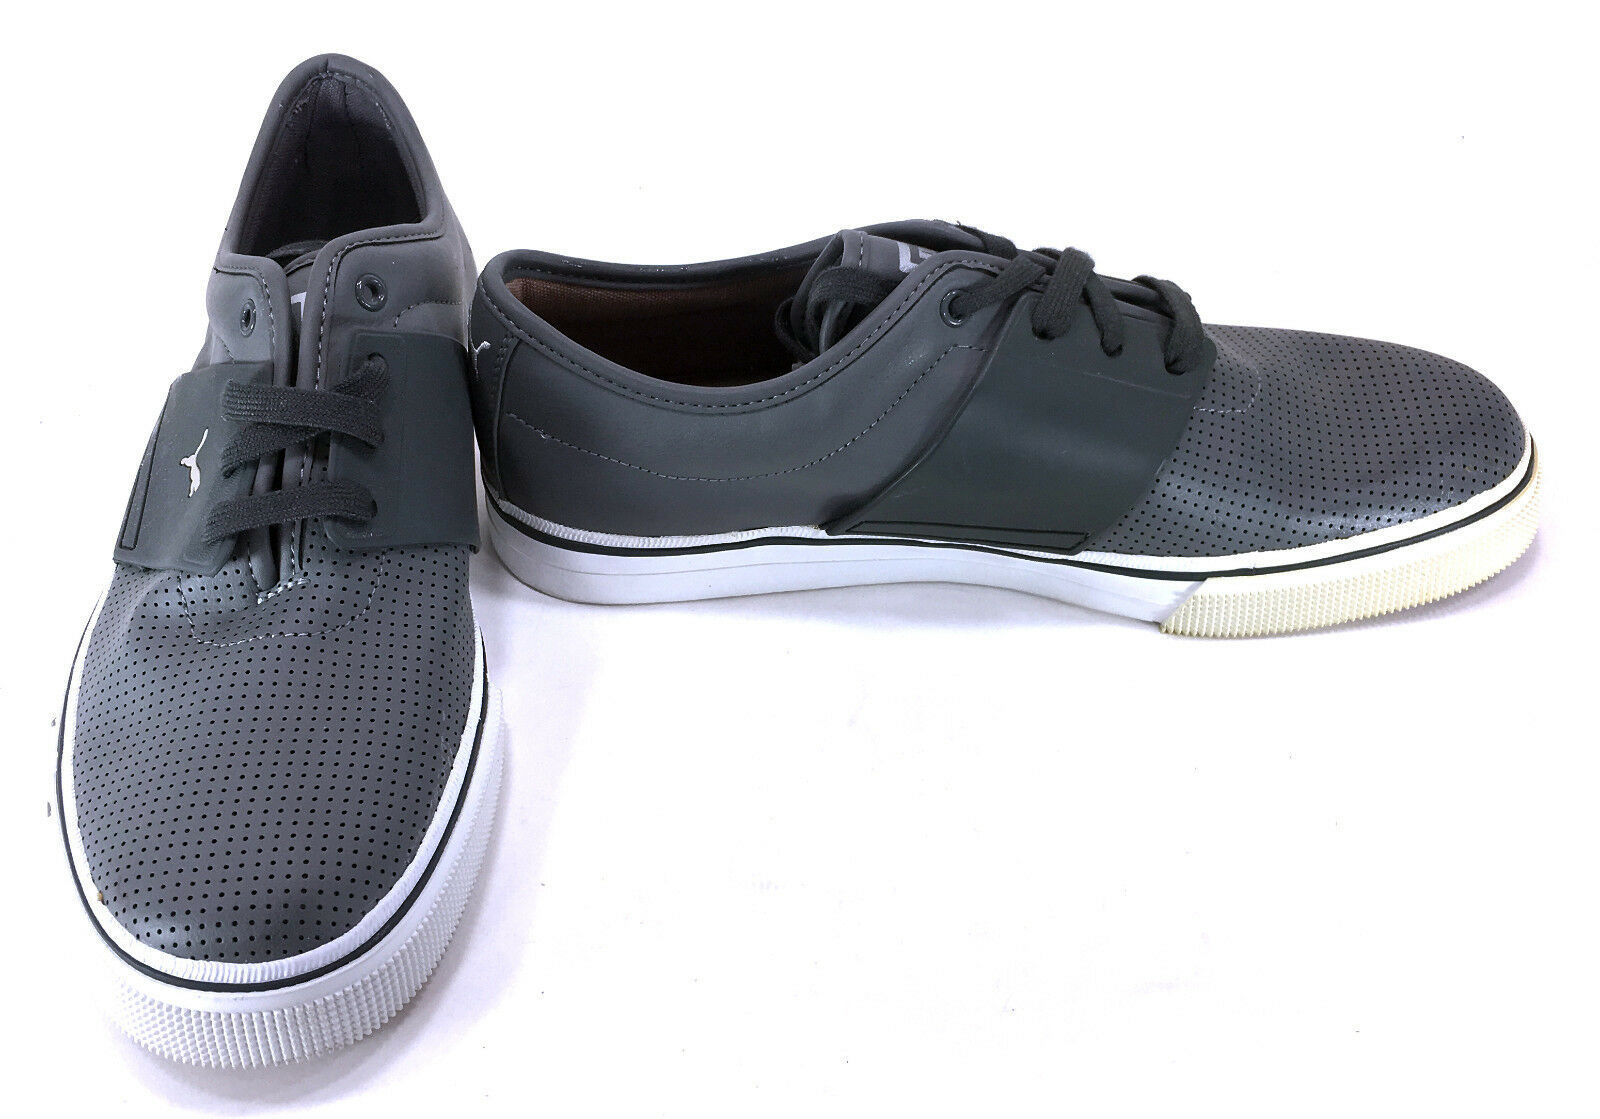 Puma Shoes El Ace Leather Perforated Gray/White Sneakers Comfortable The most popular shoes for men and women